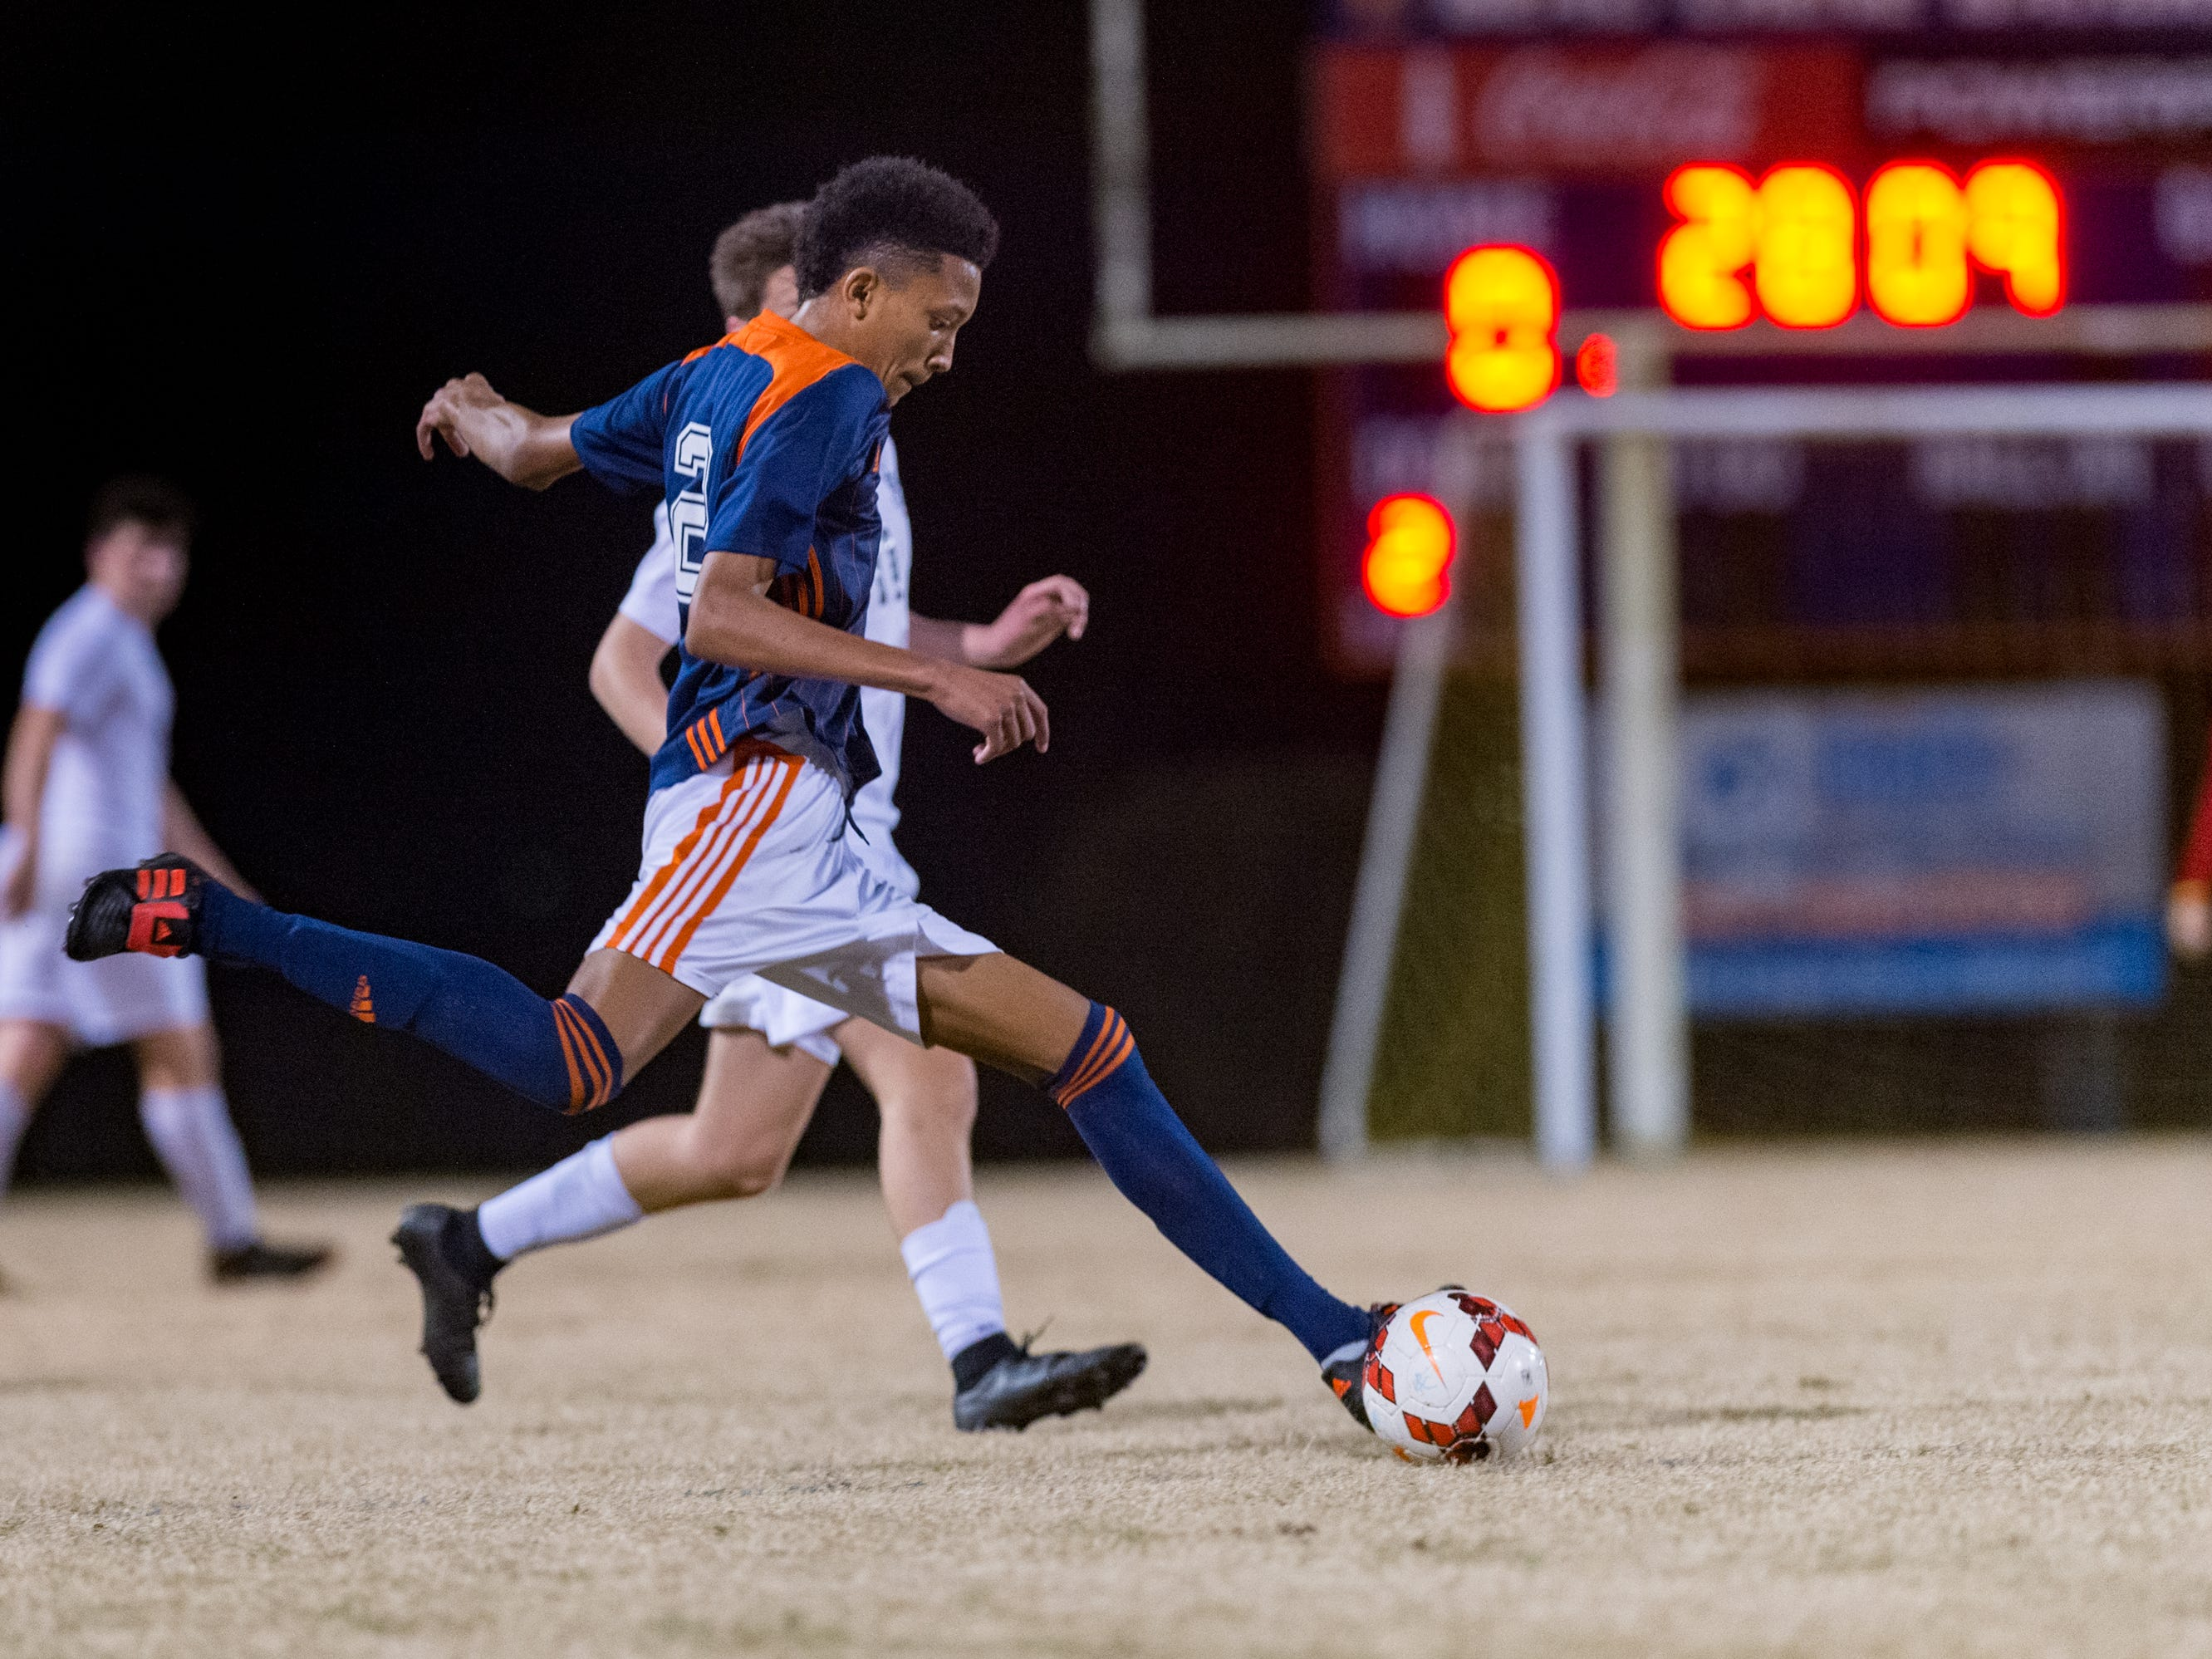 Devin Auzenne moves the bal as Beau Chene takes on STM in Boys soccer. Tuesday, Jan. 22, 2019.